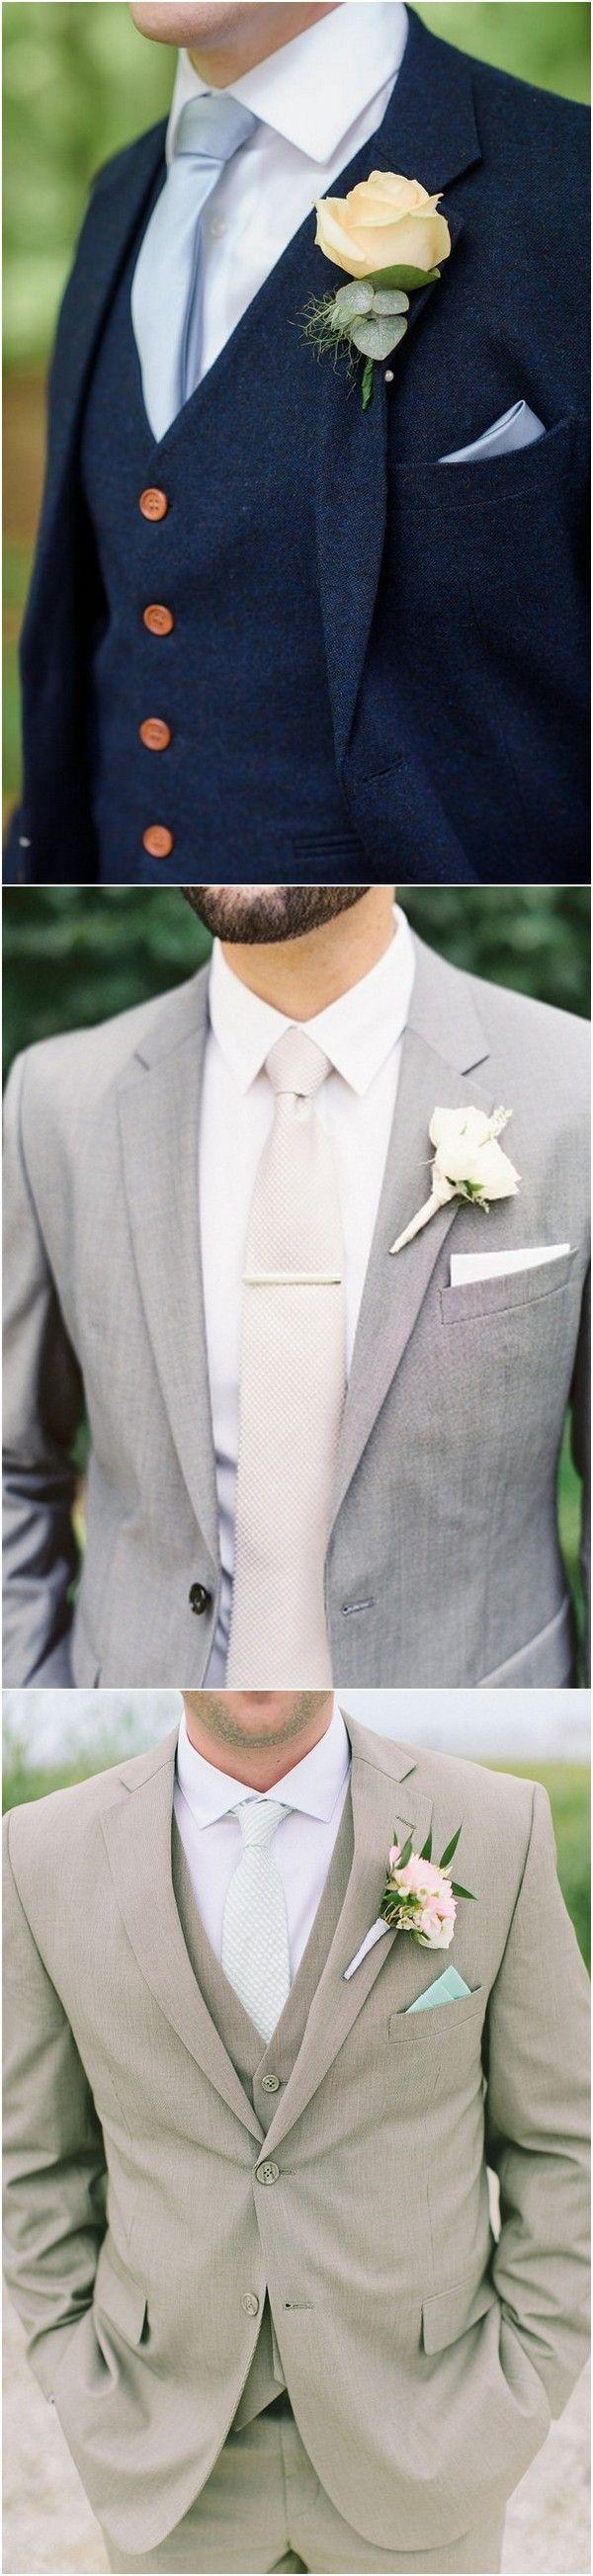 Свадьба - 20 Popular Groom Suit Ideas For Your Big Day - Page 4 Of 4